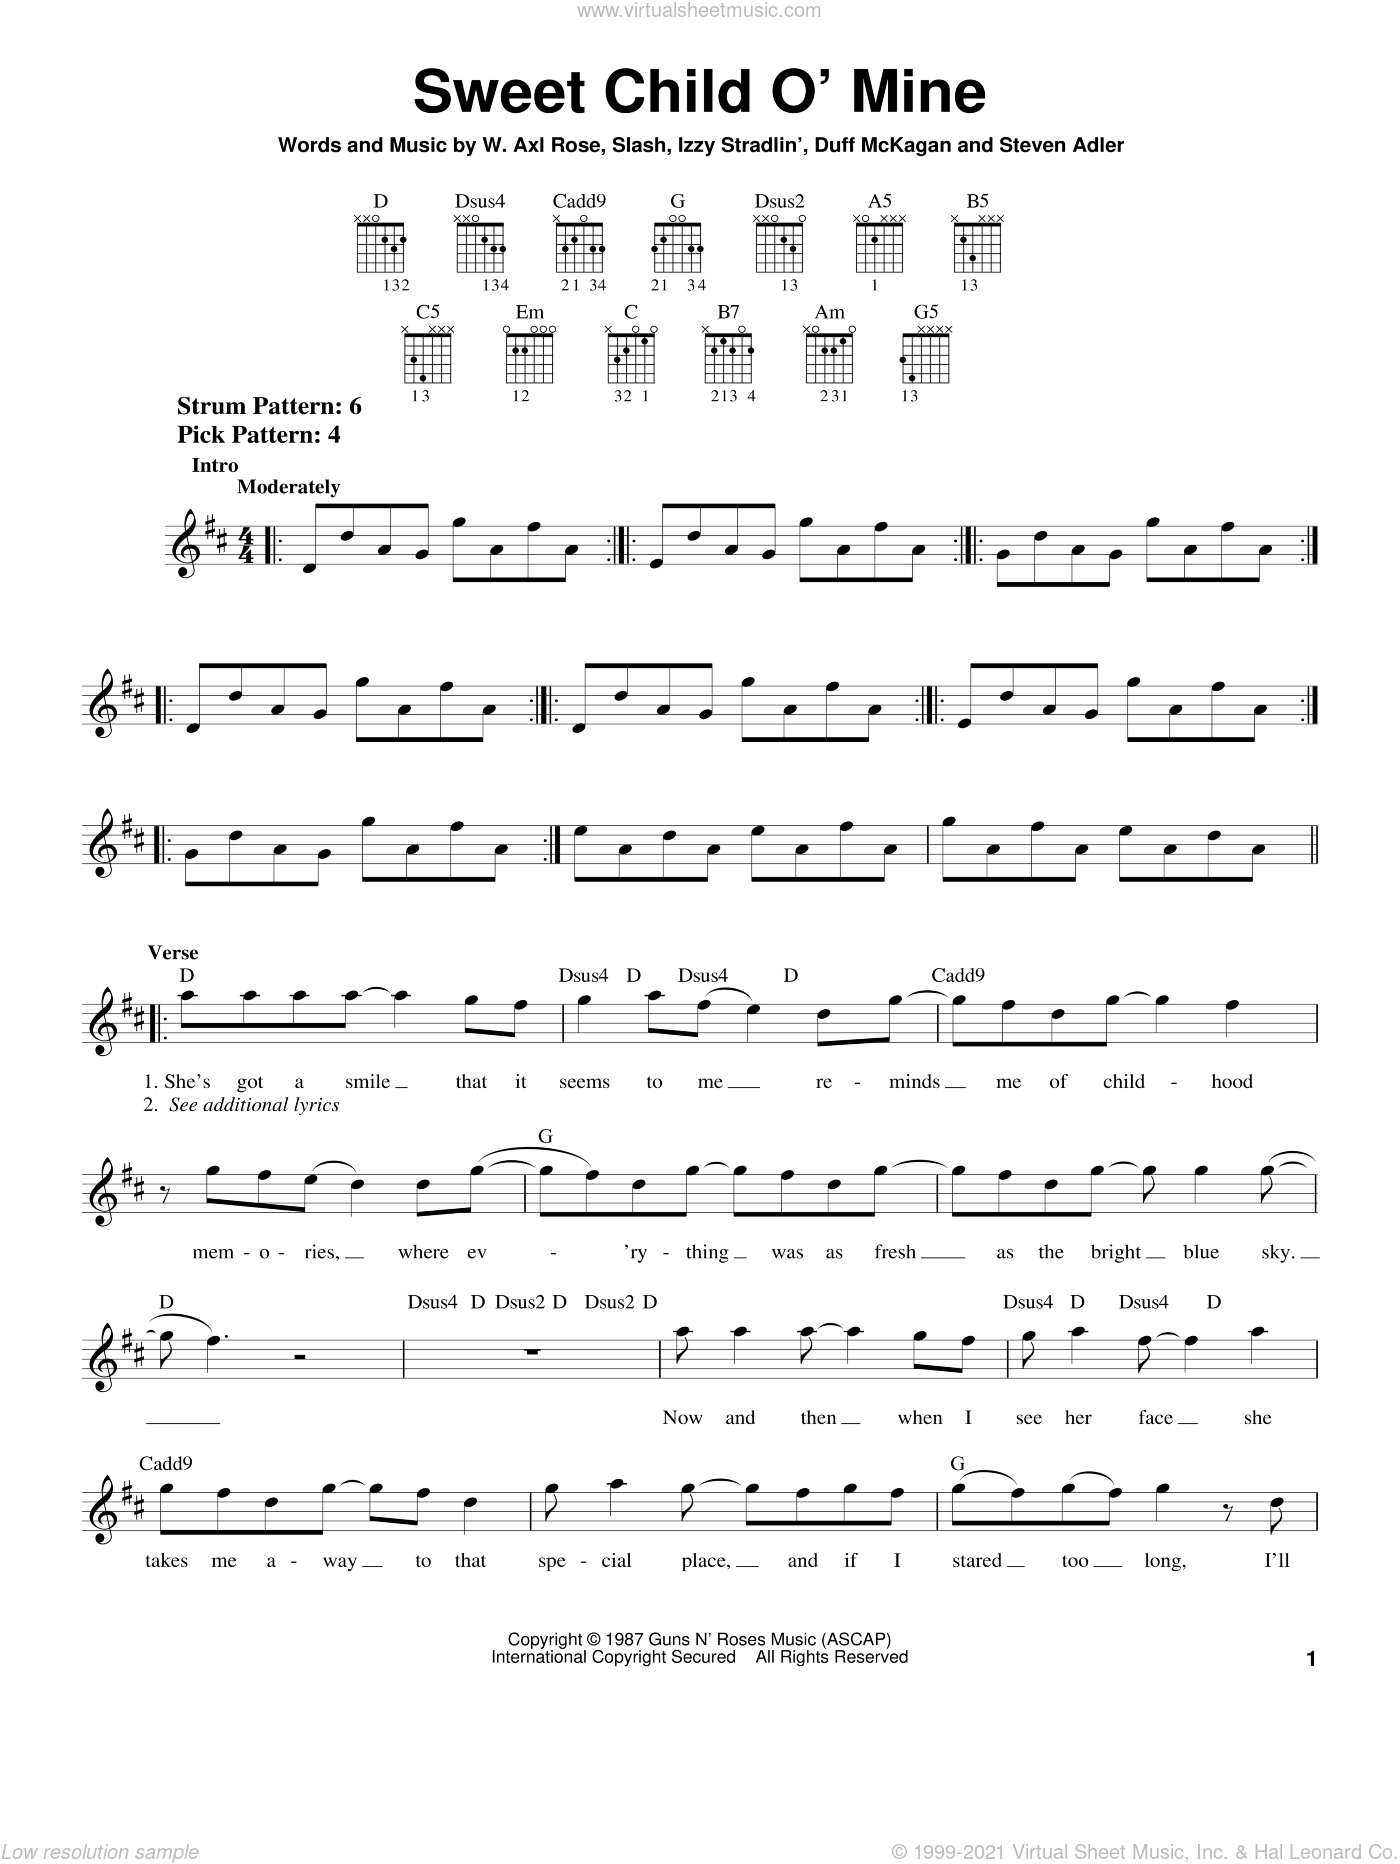 Sweet Child O' Mine sheet music for guitar solo (chords) by Guns N' Roses, Axl Rose, Duff McKagan, Slash and Steven Adler, easy guitar (chords). Score Image Preview.